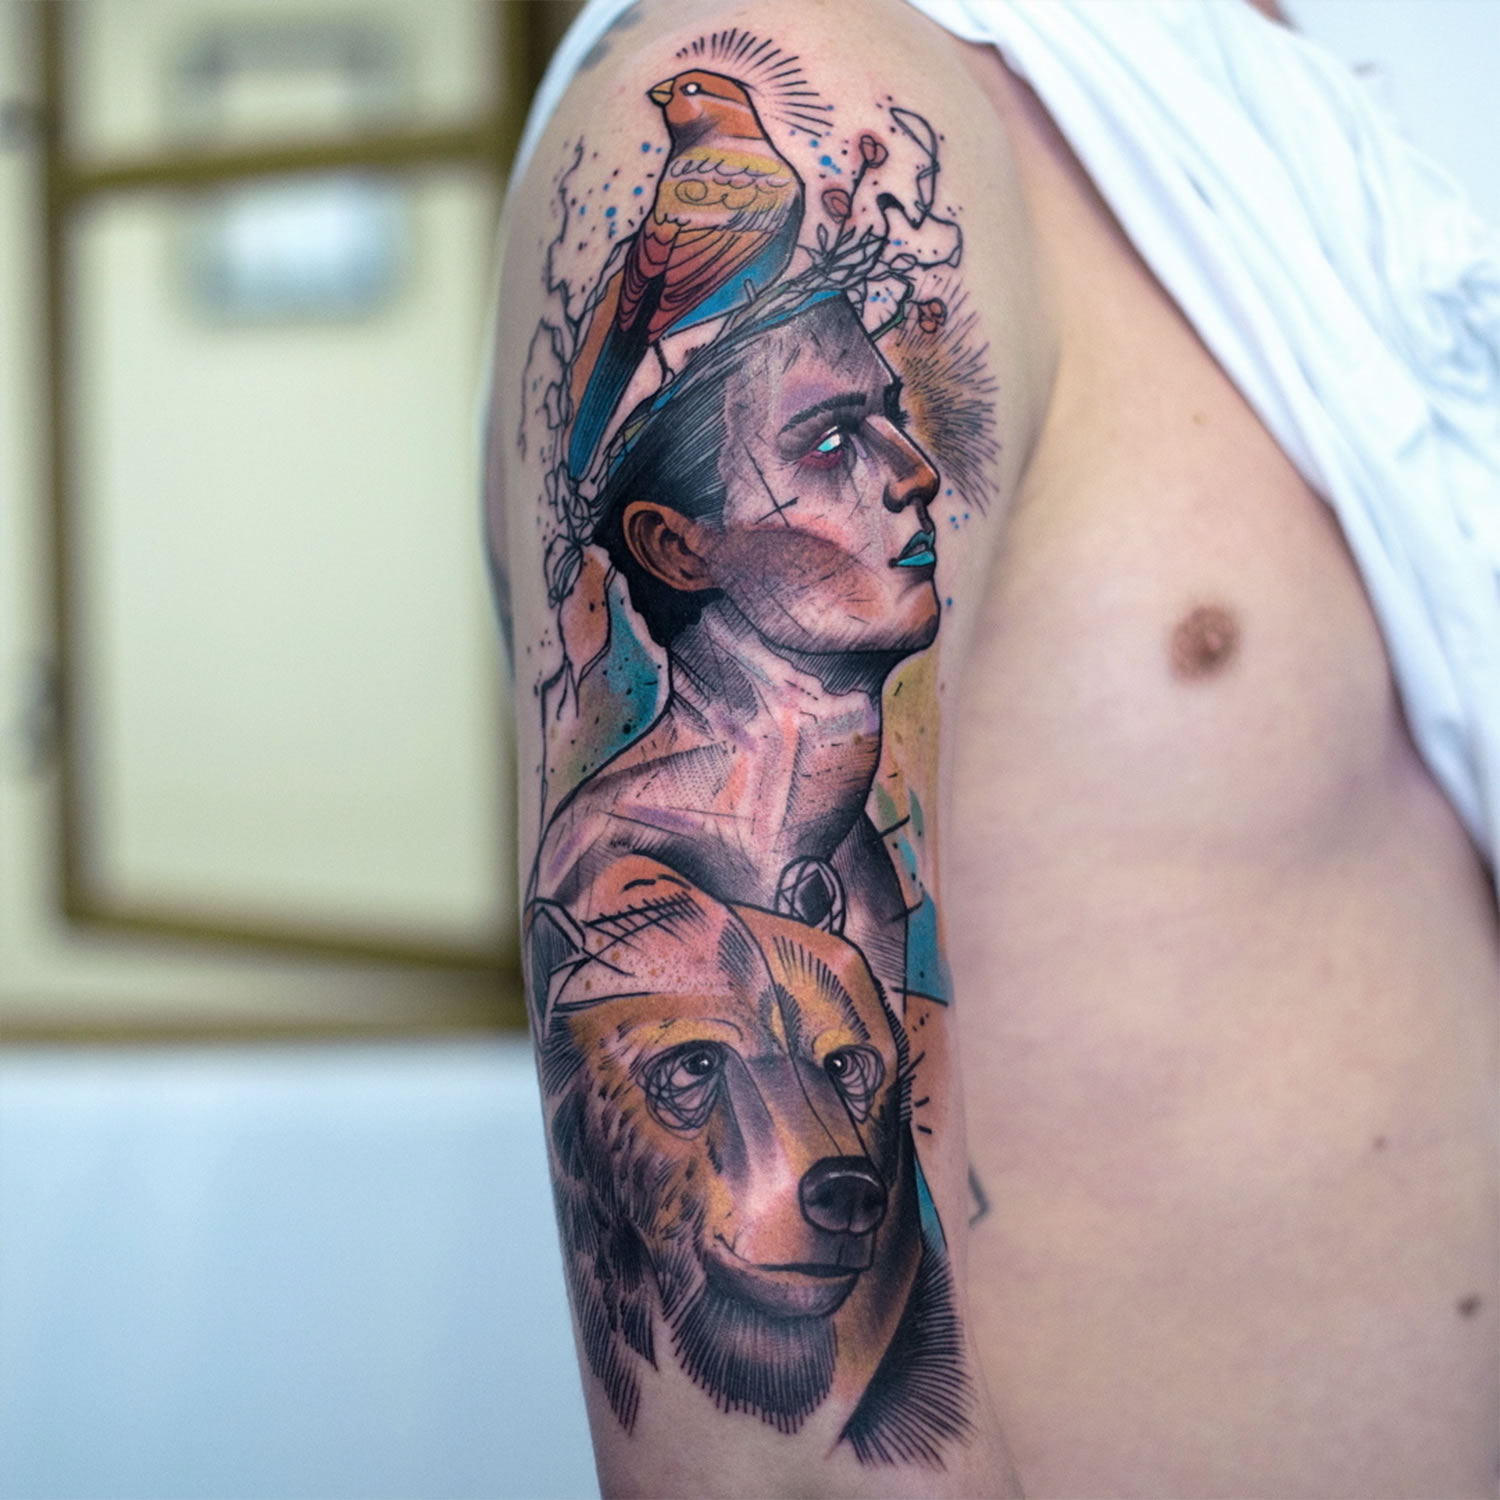 man and bear tattoo on arm